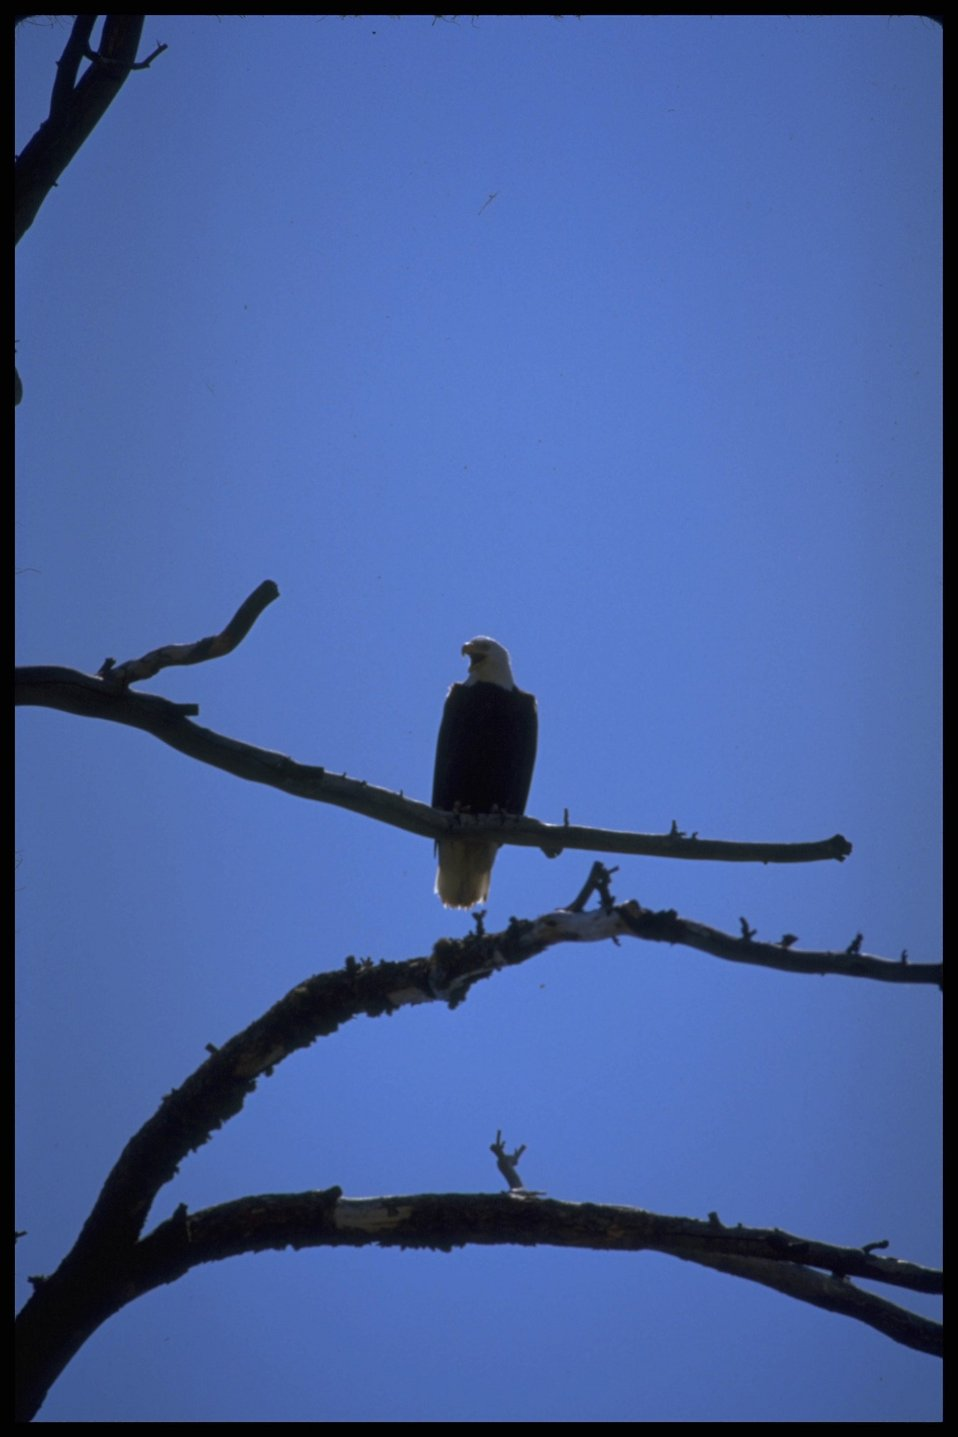 Farshot of Bald Eagle perched on tree branch. Lakeview District.